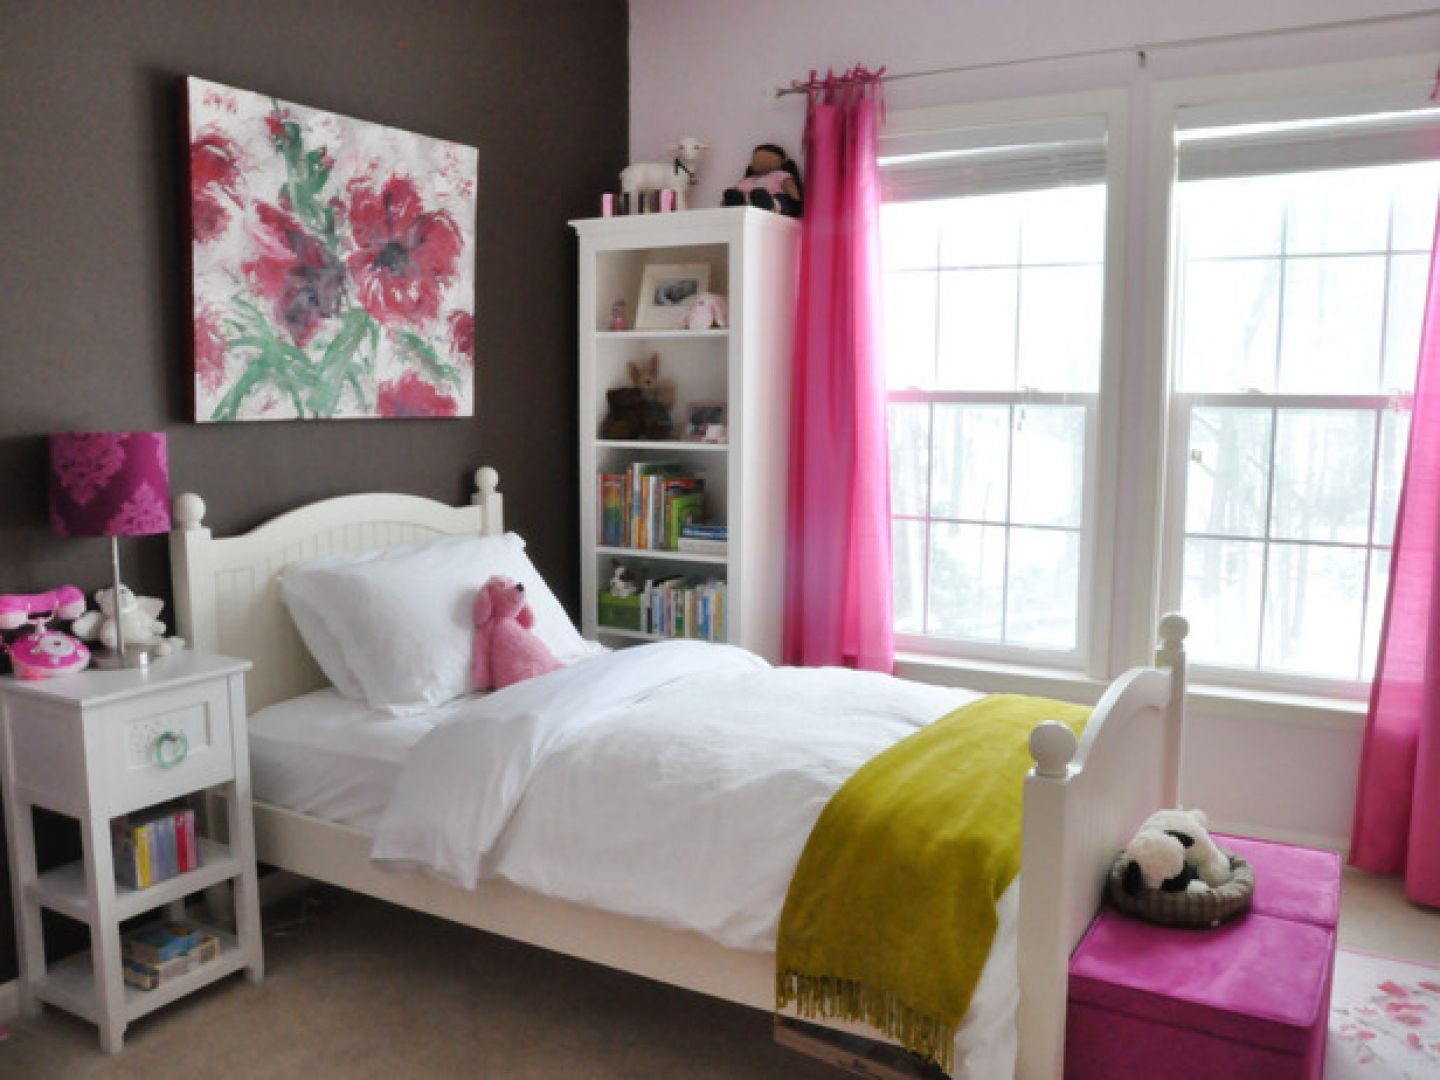 Combine Dark and White Wall for Old Fashioned Teen Room Decor with White Bed and Nightstand